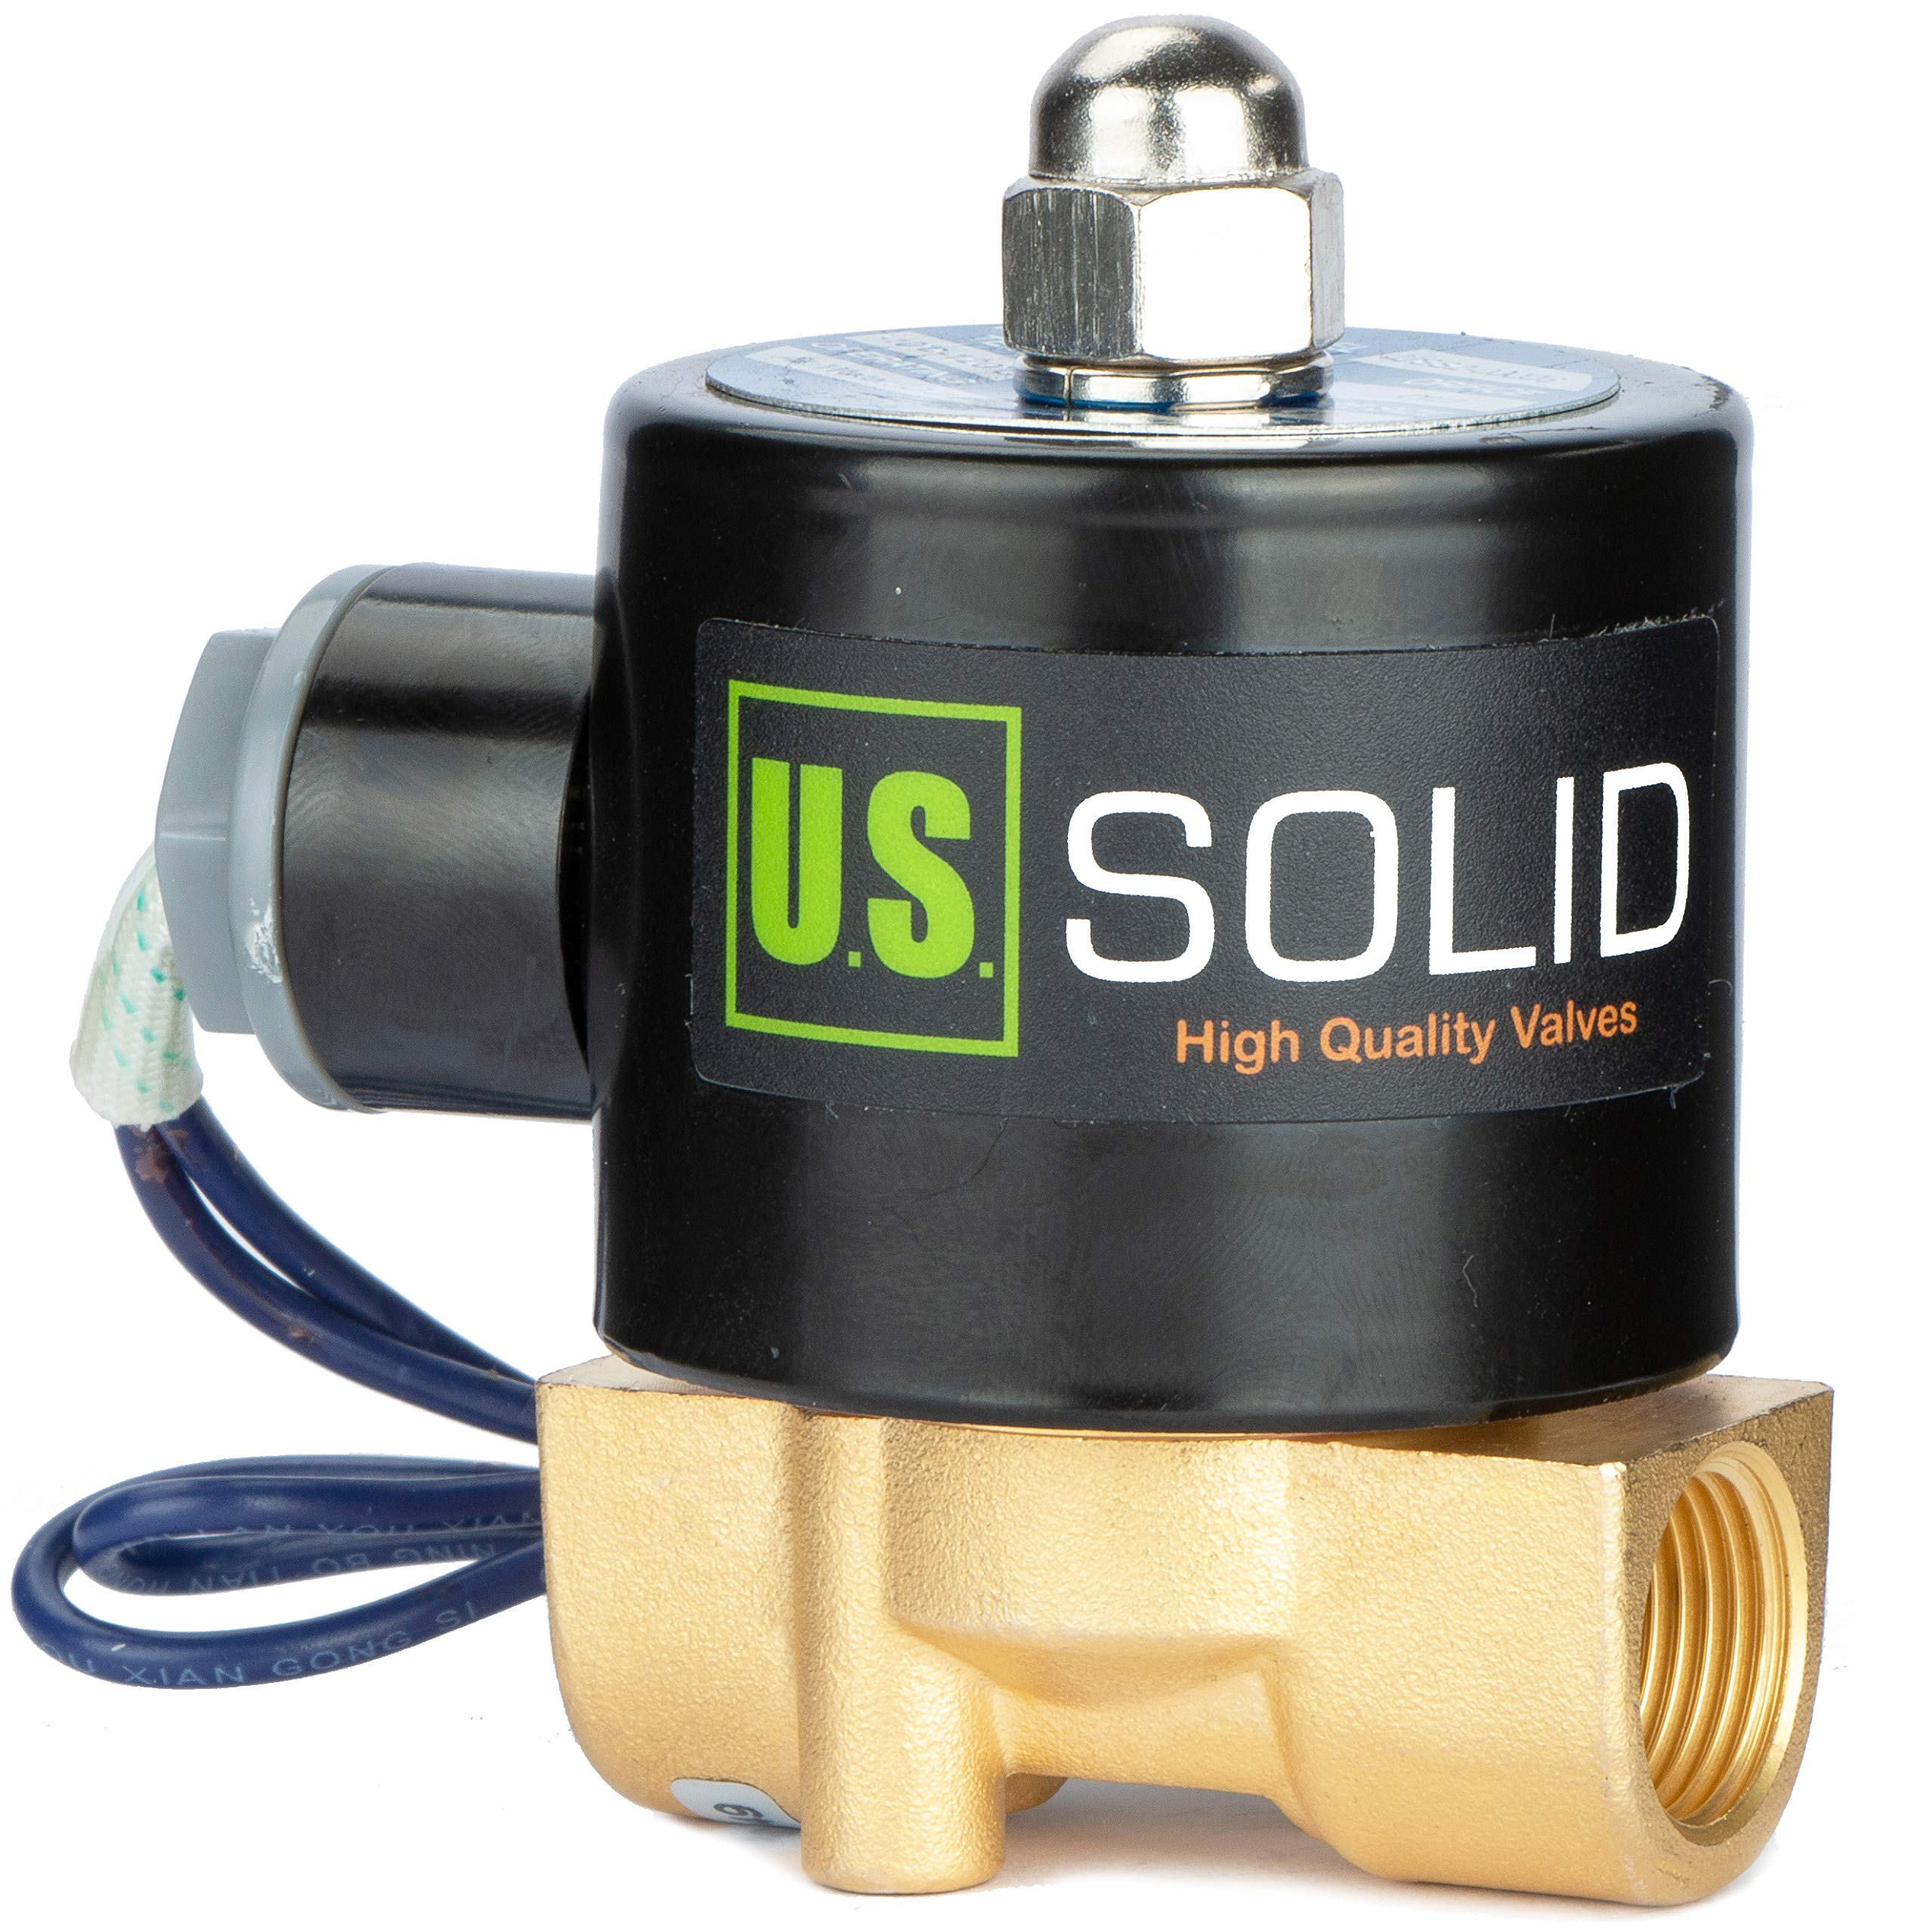 3/8'' Electric Solenoid Valve 12-VDC, VITON Gasket, Air, Gas, Fuel Normally Closed by U.S. Solid